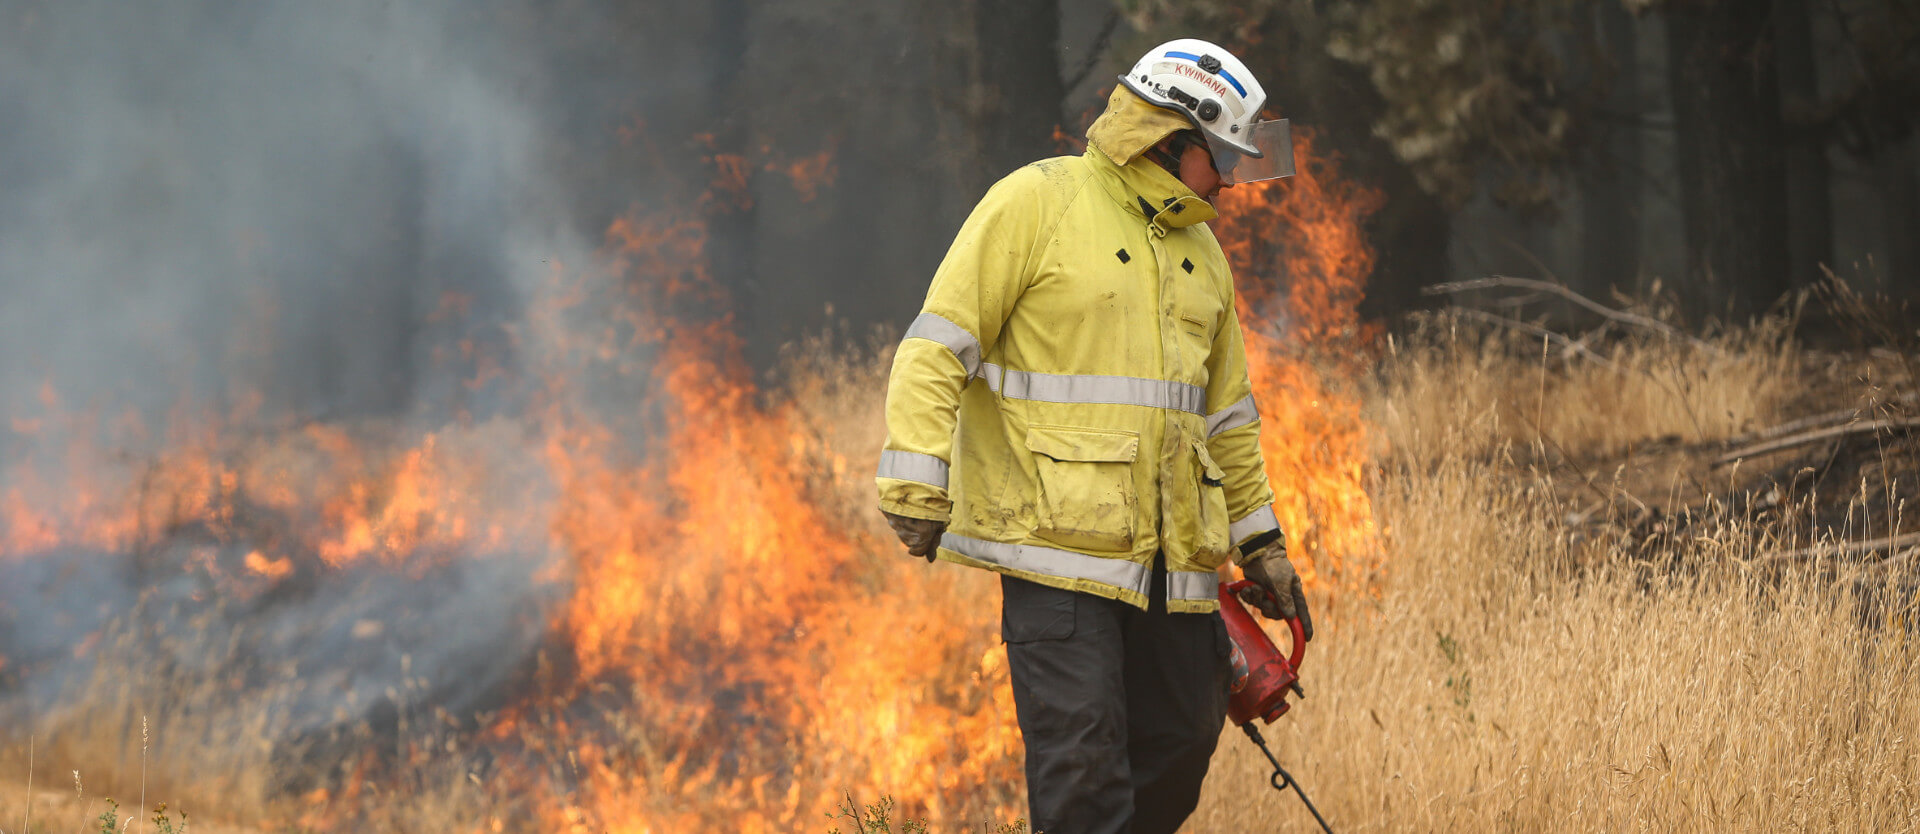 Firefighter creating firebreak with torch